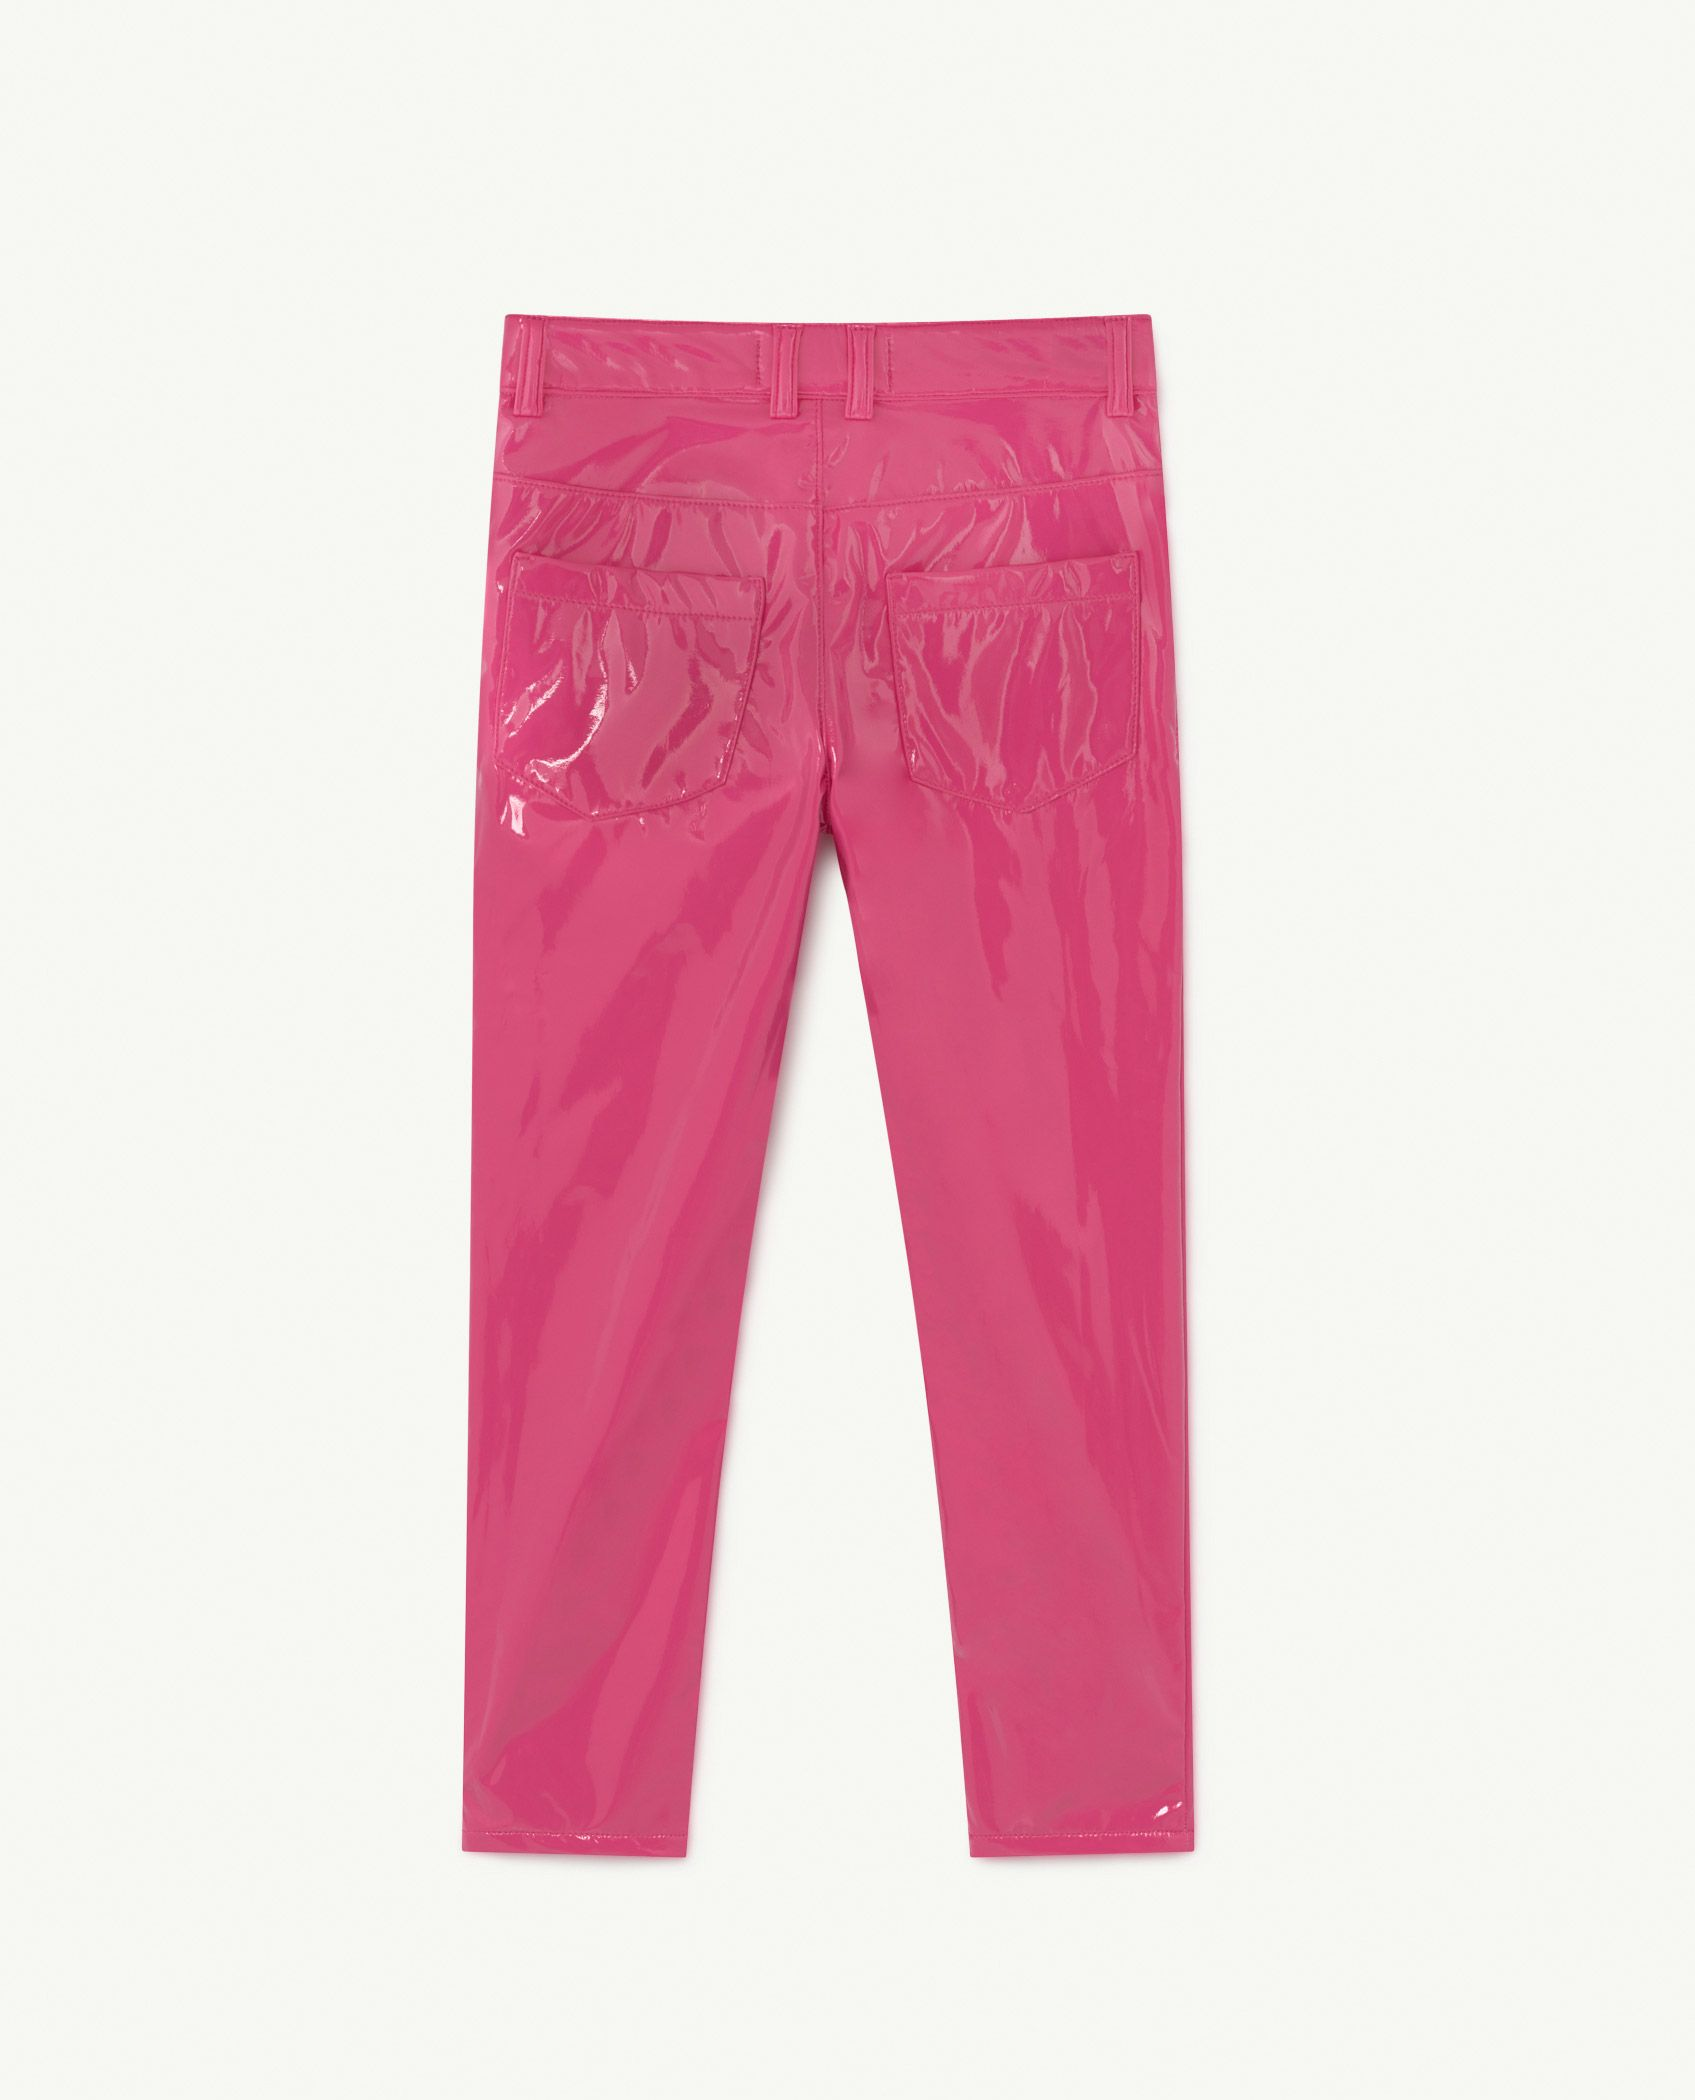 Pink The Animals Mosquito Trousers img-2